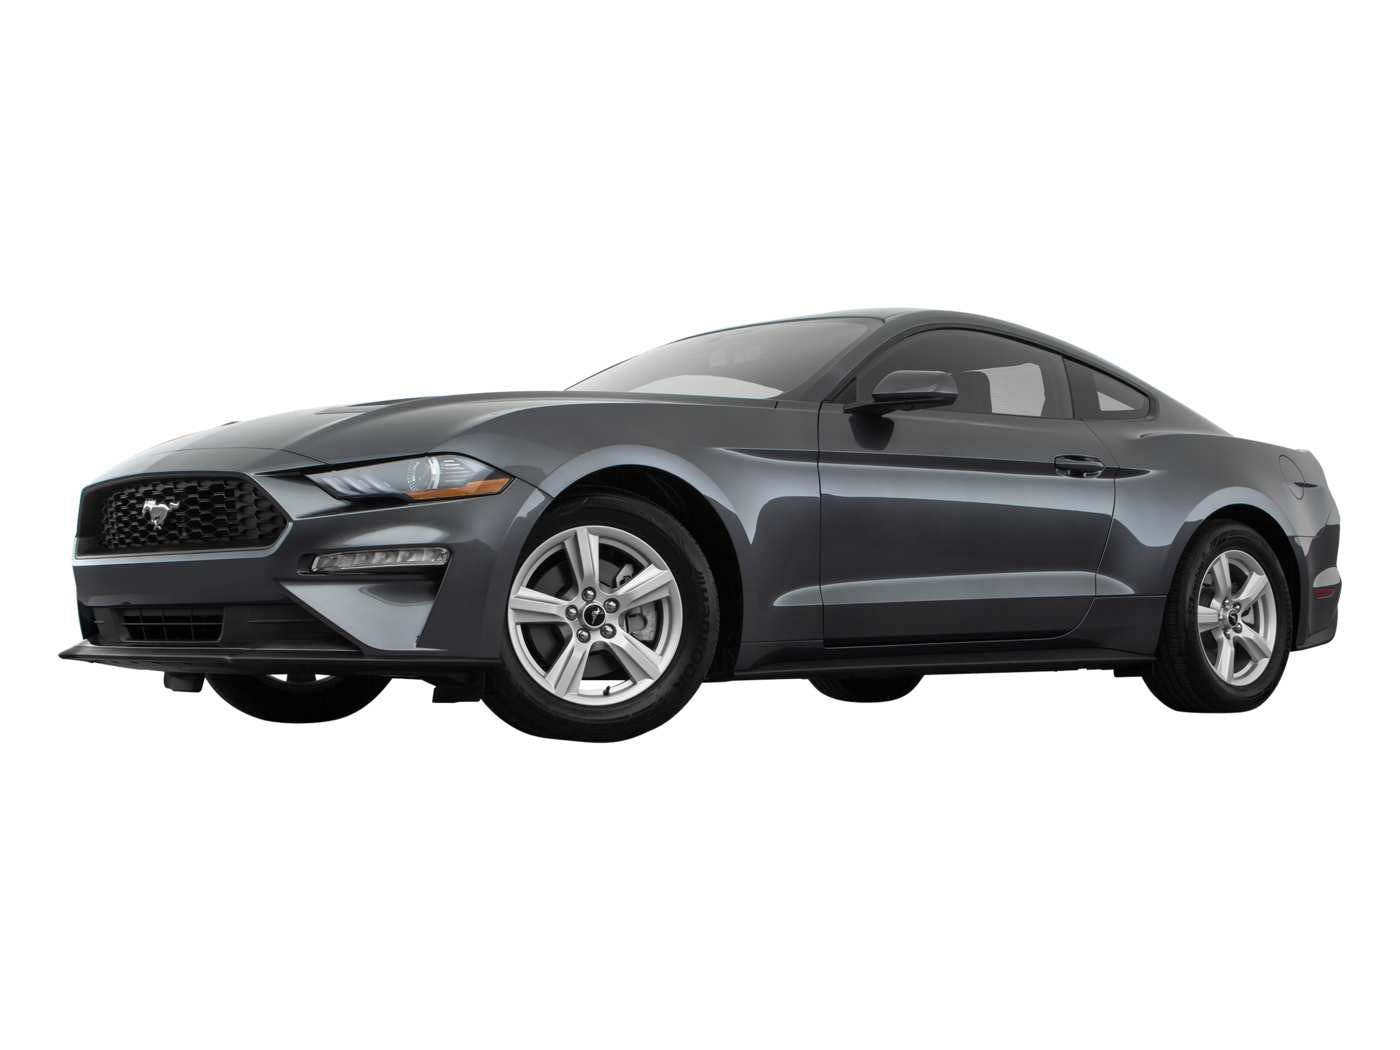 2019 Ford Mustang Exterior Front Low Wide View 2